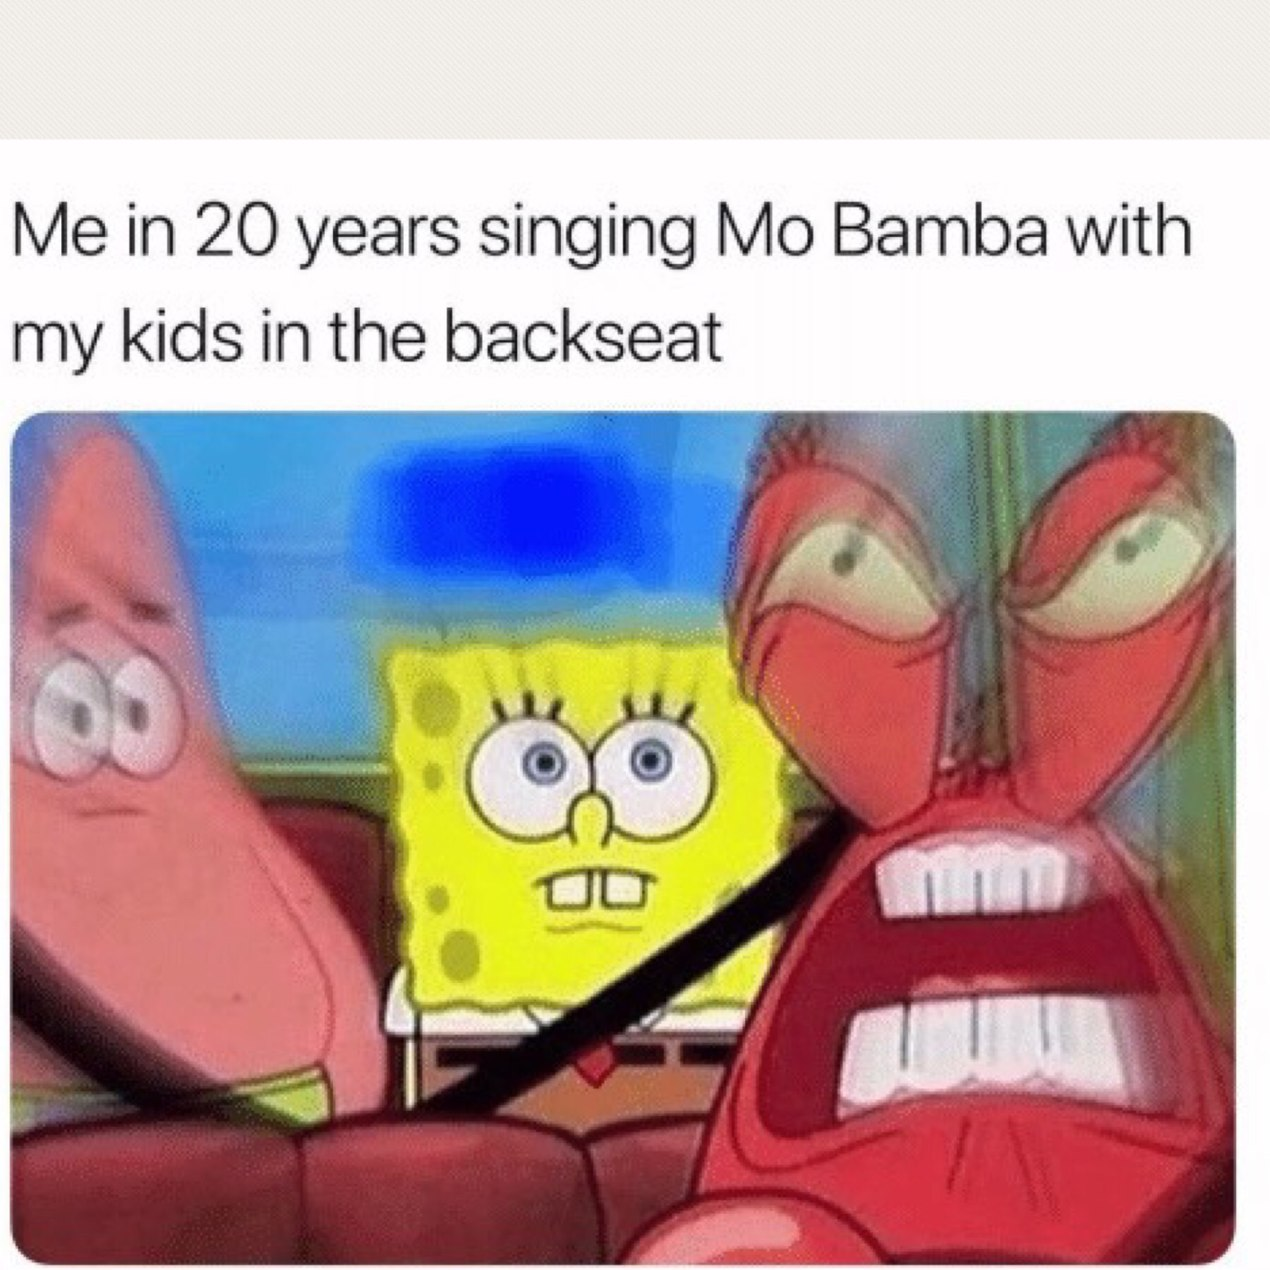 Y'all want to hear mo bamba? - meme